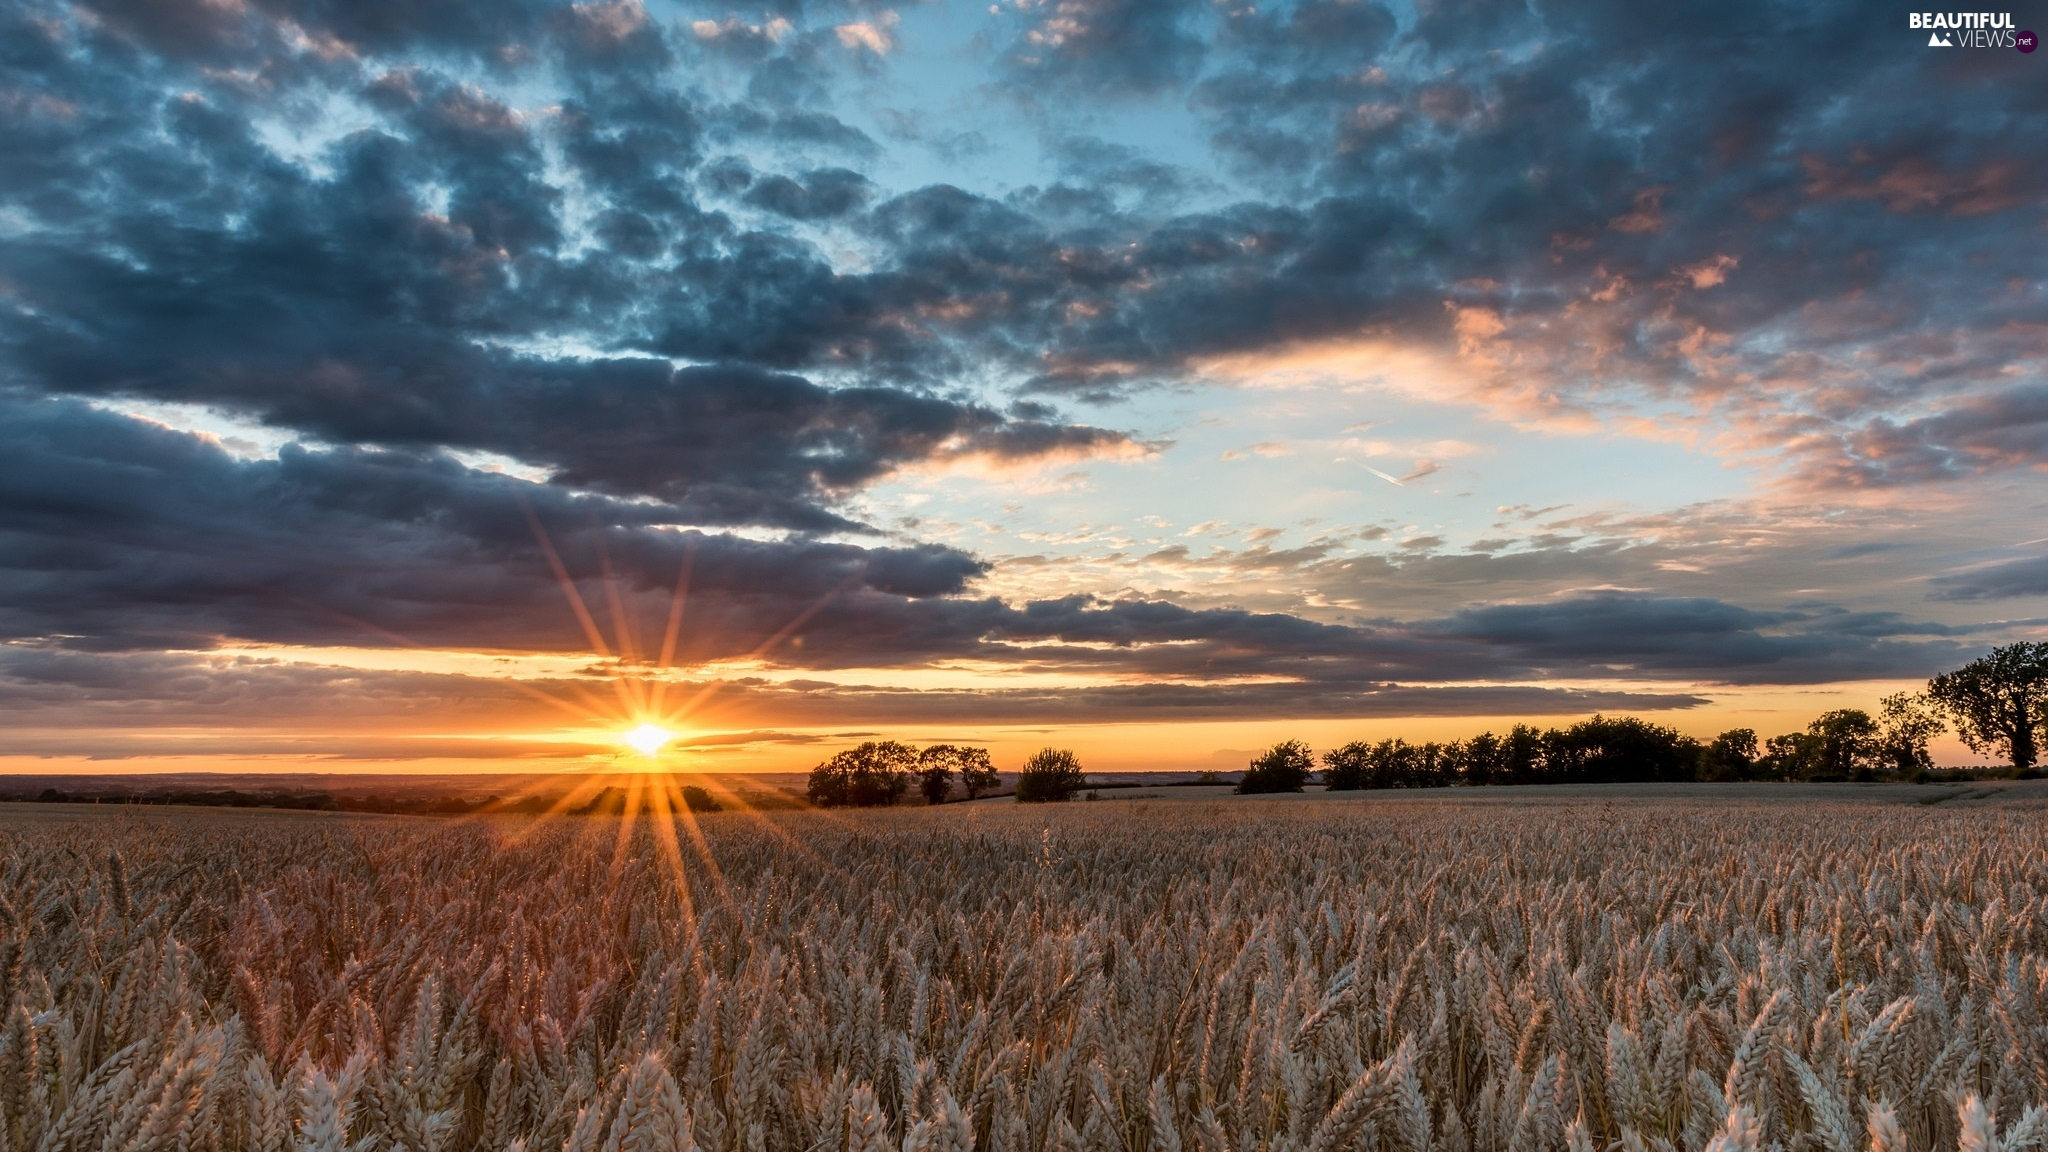 trees, Field, clouds, rays of the Sun, viewes, corn